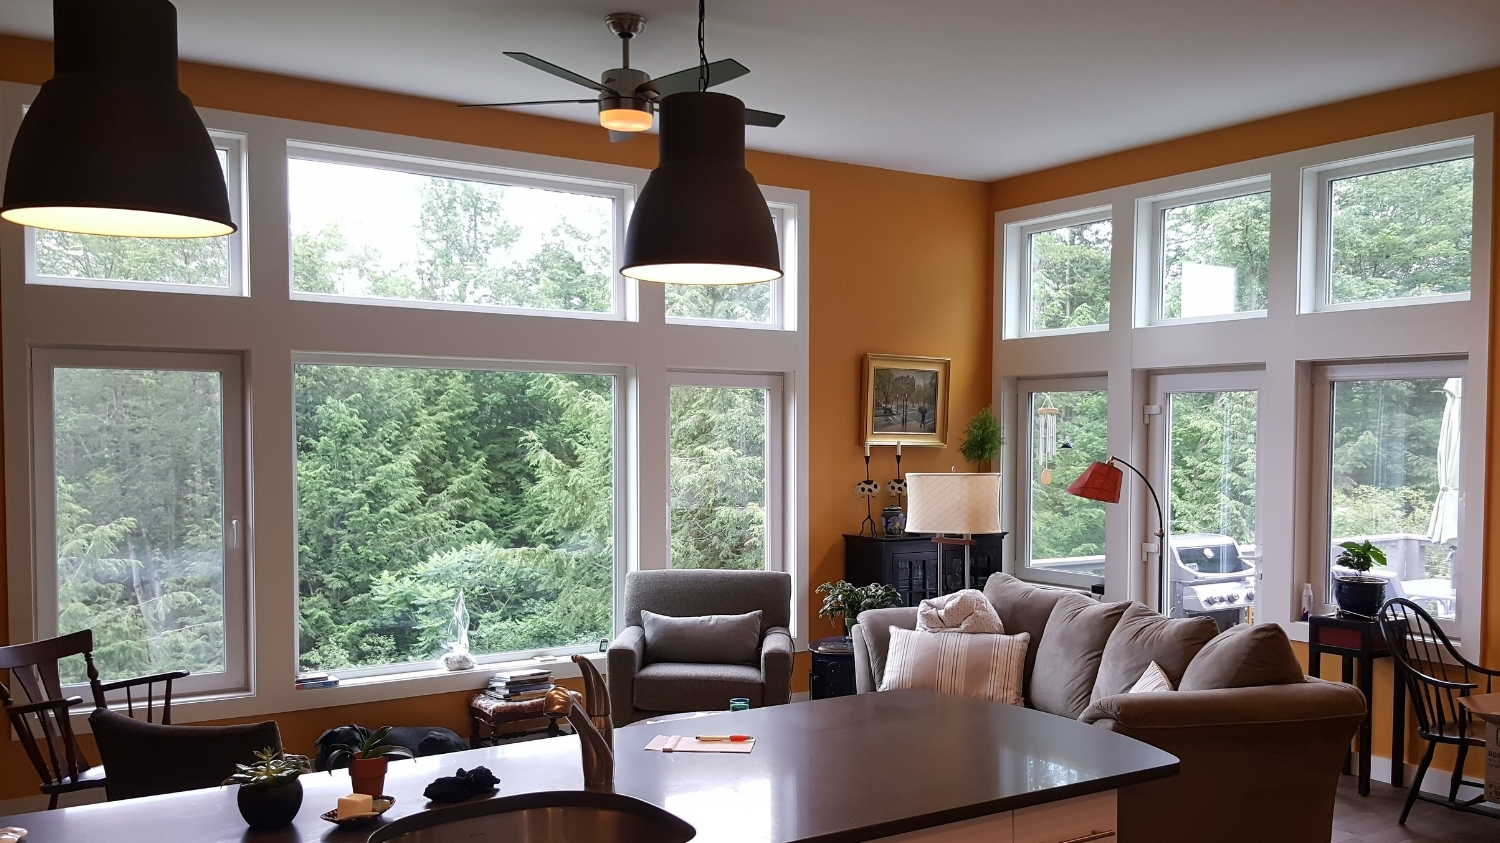 Image result for WINDOW AND GATE